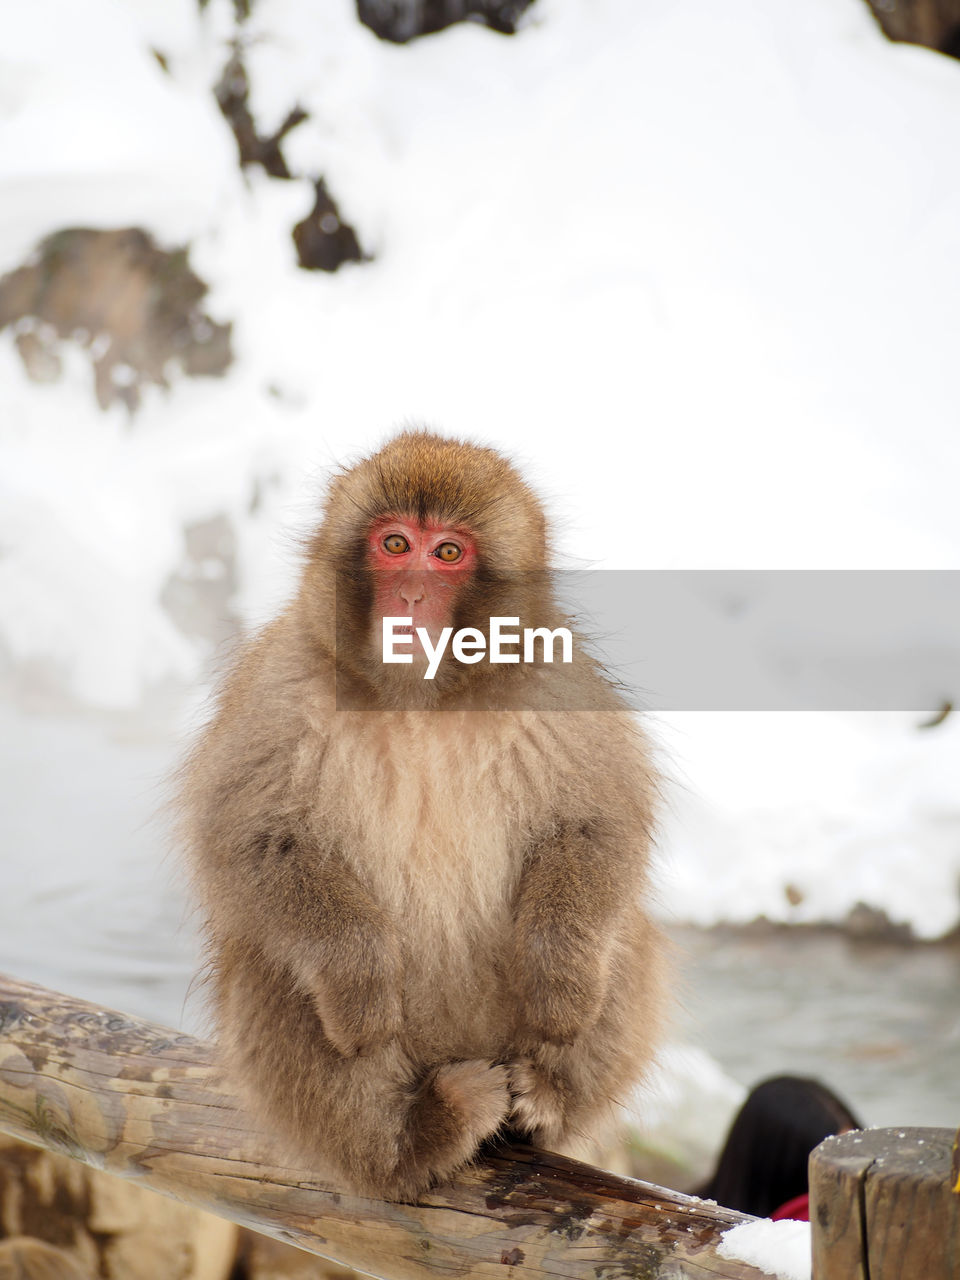 animal themes, animal, monkey, primate, mammal, animal wildlife, one animal, cold temperature, animals in the wild, japanese macaque, vertebrate, winter, snow, day, focus on foreground, nature, outdoors, portrait, no people